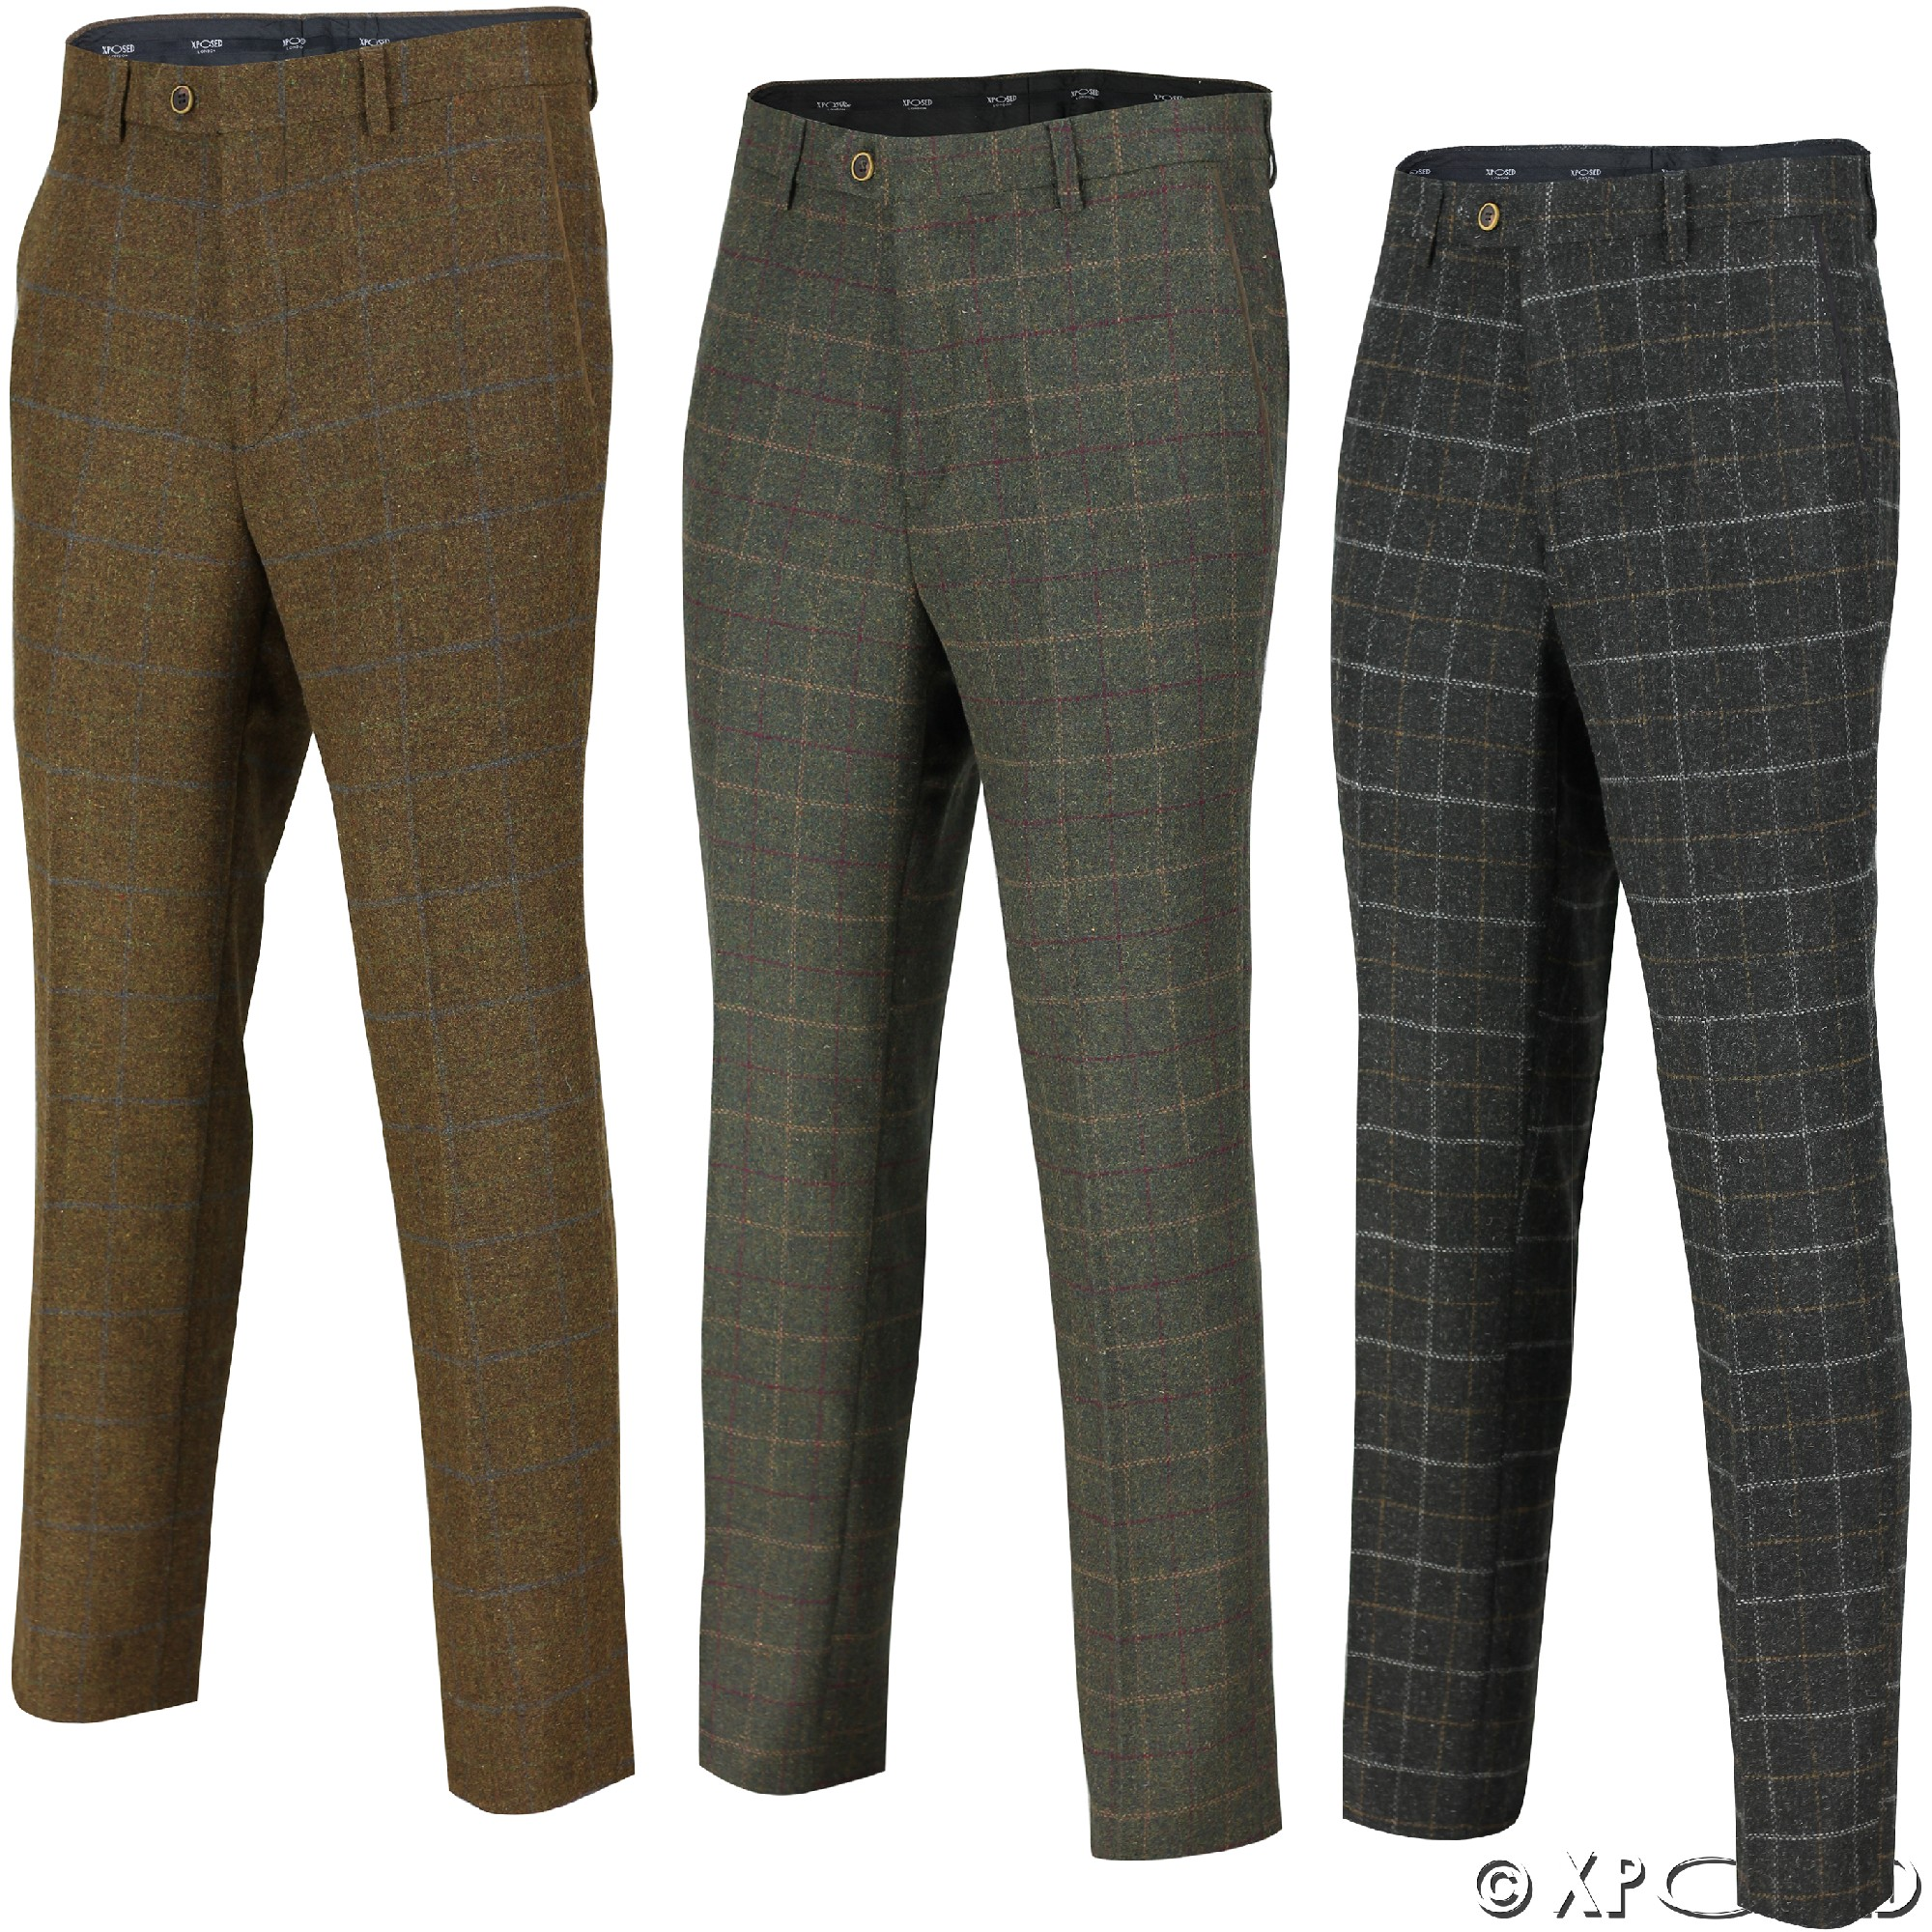 Trouser Pants. For work or for play, choose trouser pants to help you get through the many life occasions. A trouser is a great choice for men or women at the office, out on date night or even for those casual days spent running errands. Trousers have a wider leg, which makes them comfortable, while still looking sharp and polished.